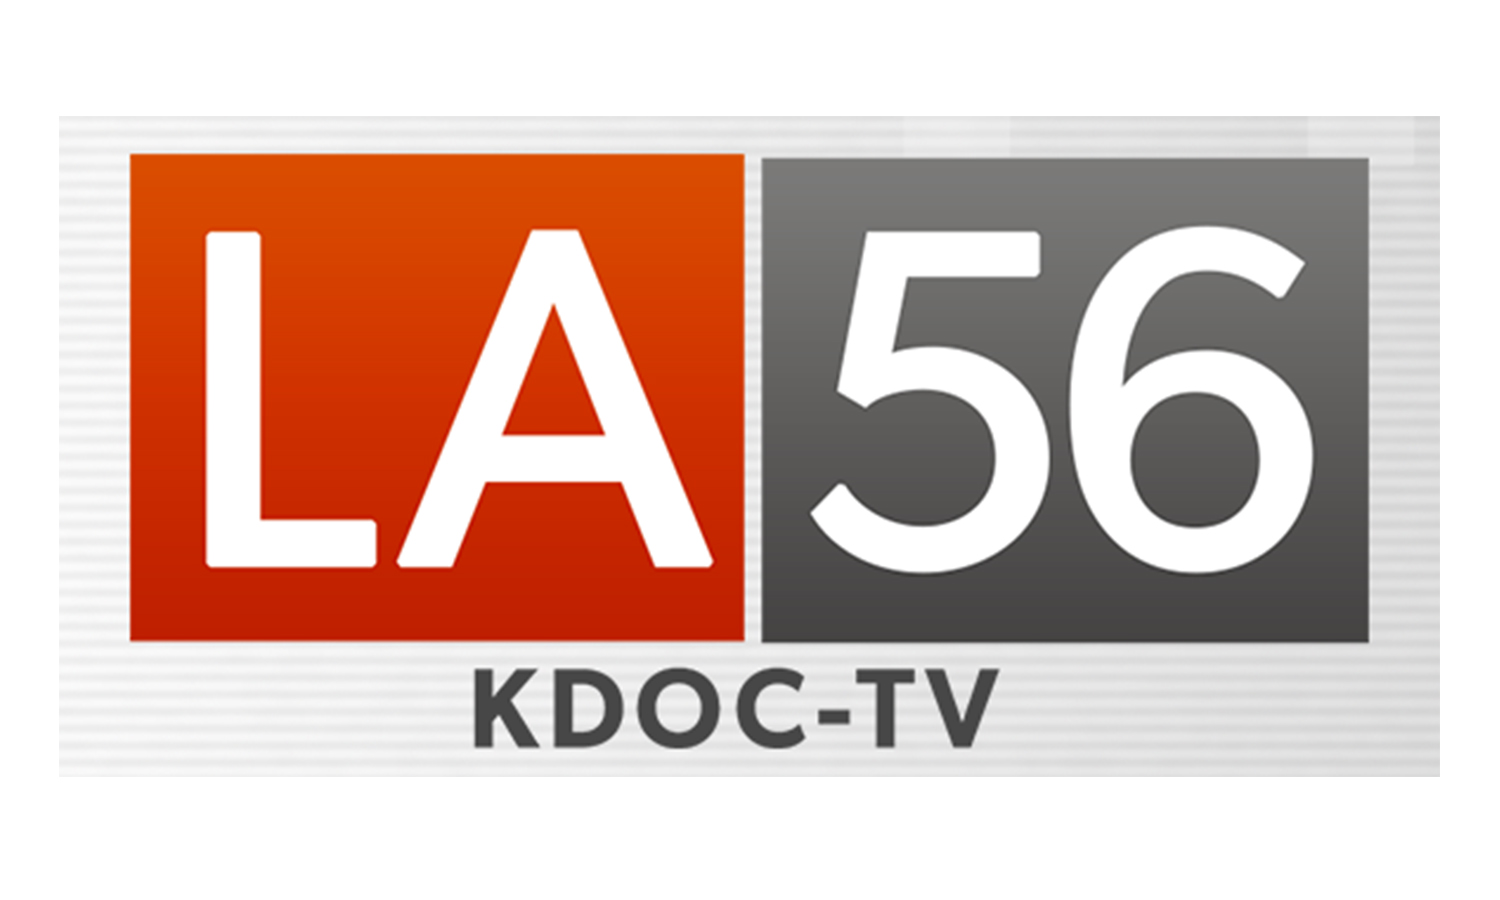 KDOC-TV, channel 56, is an independent television station licensed to Anaheim, California, USA and serving the Los Angeles television market. KDOC-TV is owned by Ellis Communications, and is operated by Titan TV Broadcast Group.    www.la56.tv